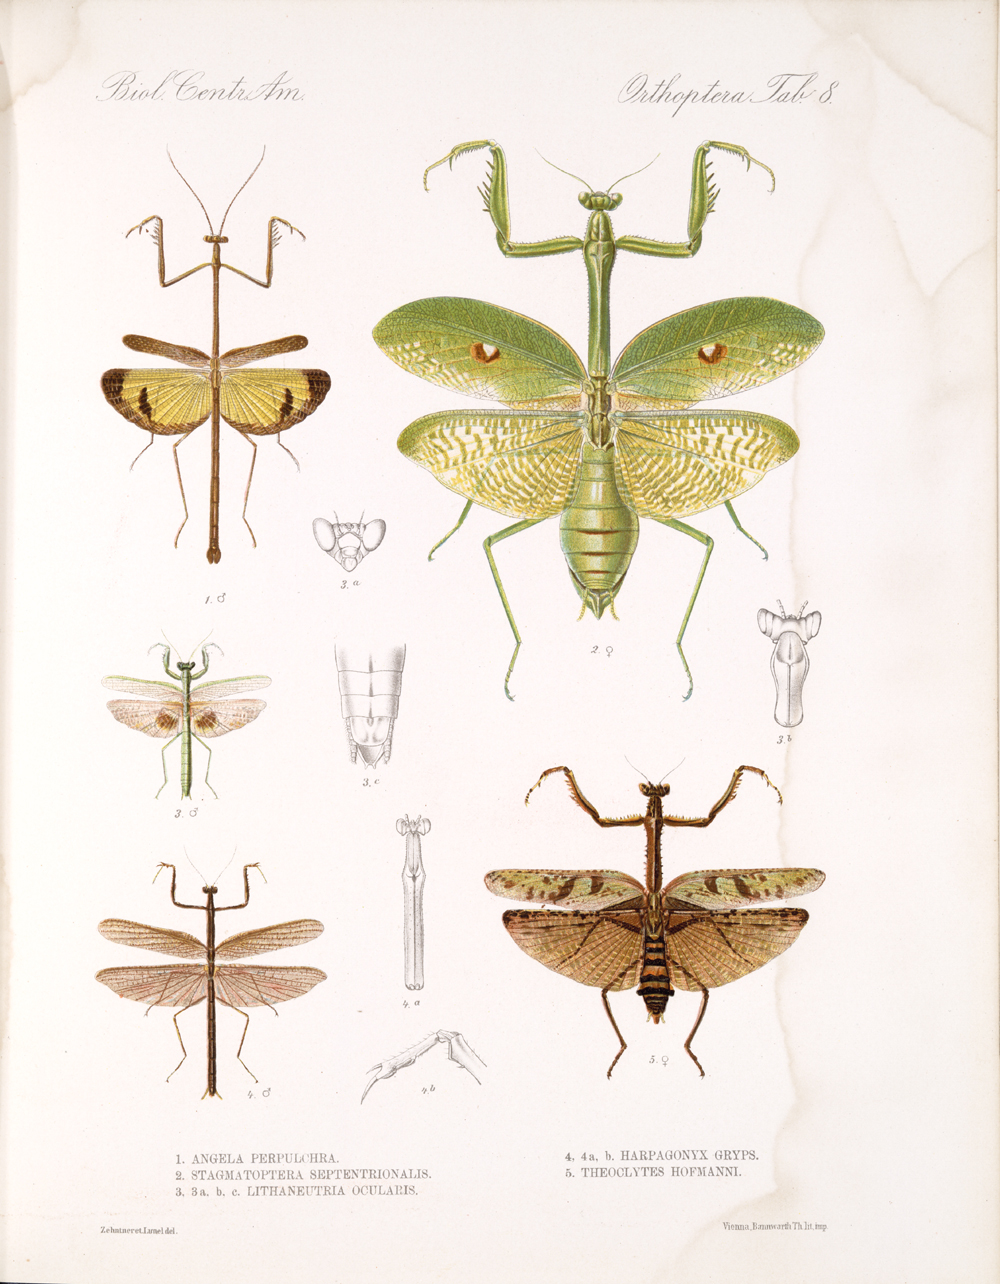 Grasshoppers and Related Insects,  Image number:bca_20_01_00_482